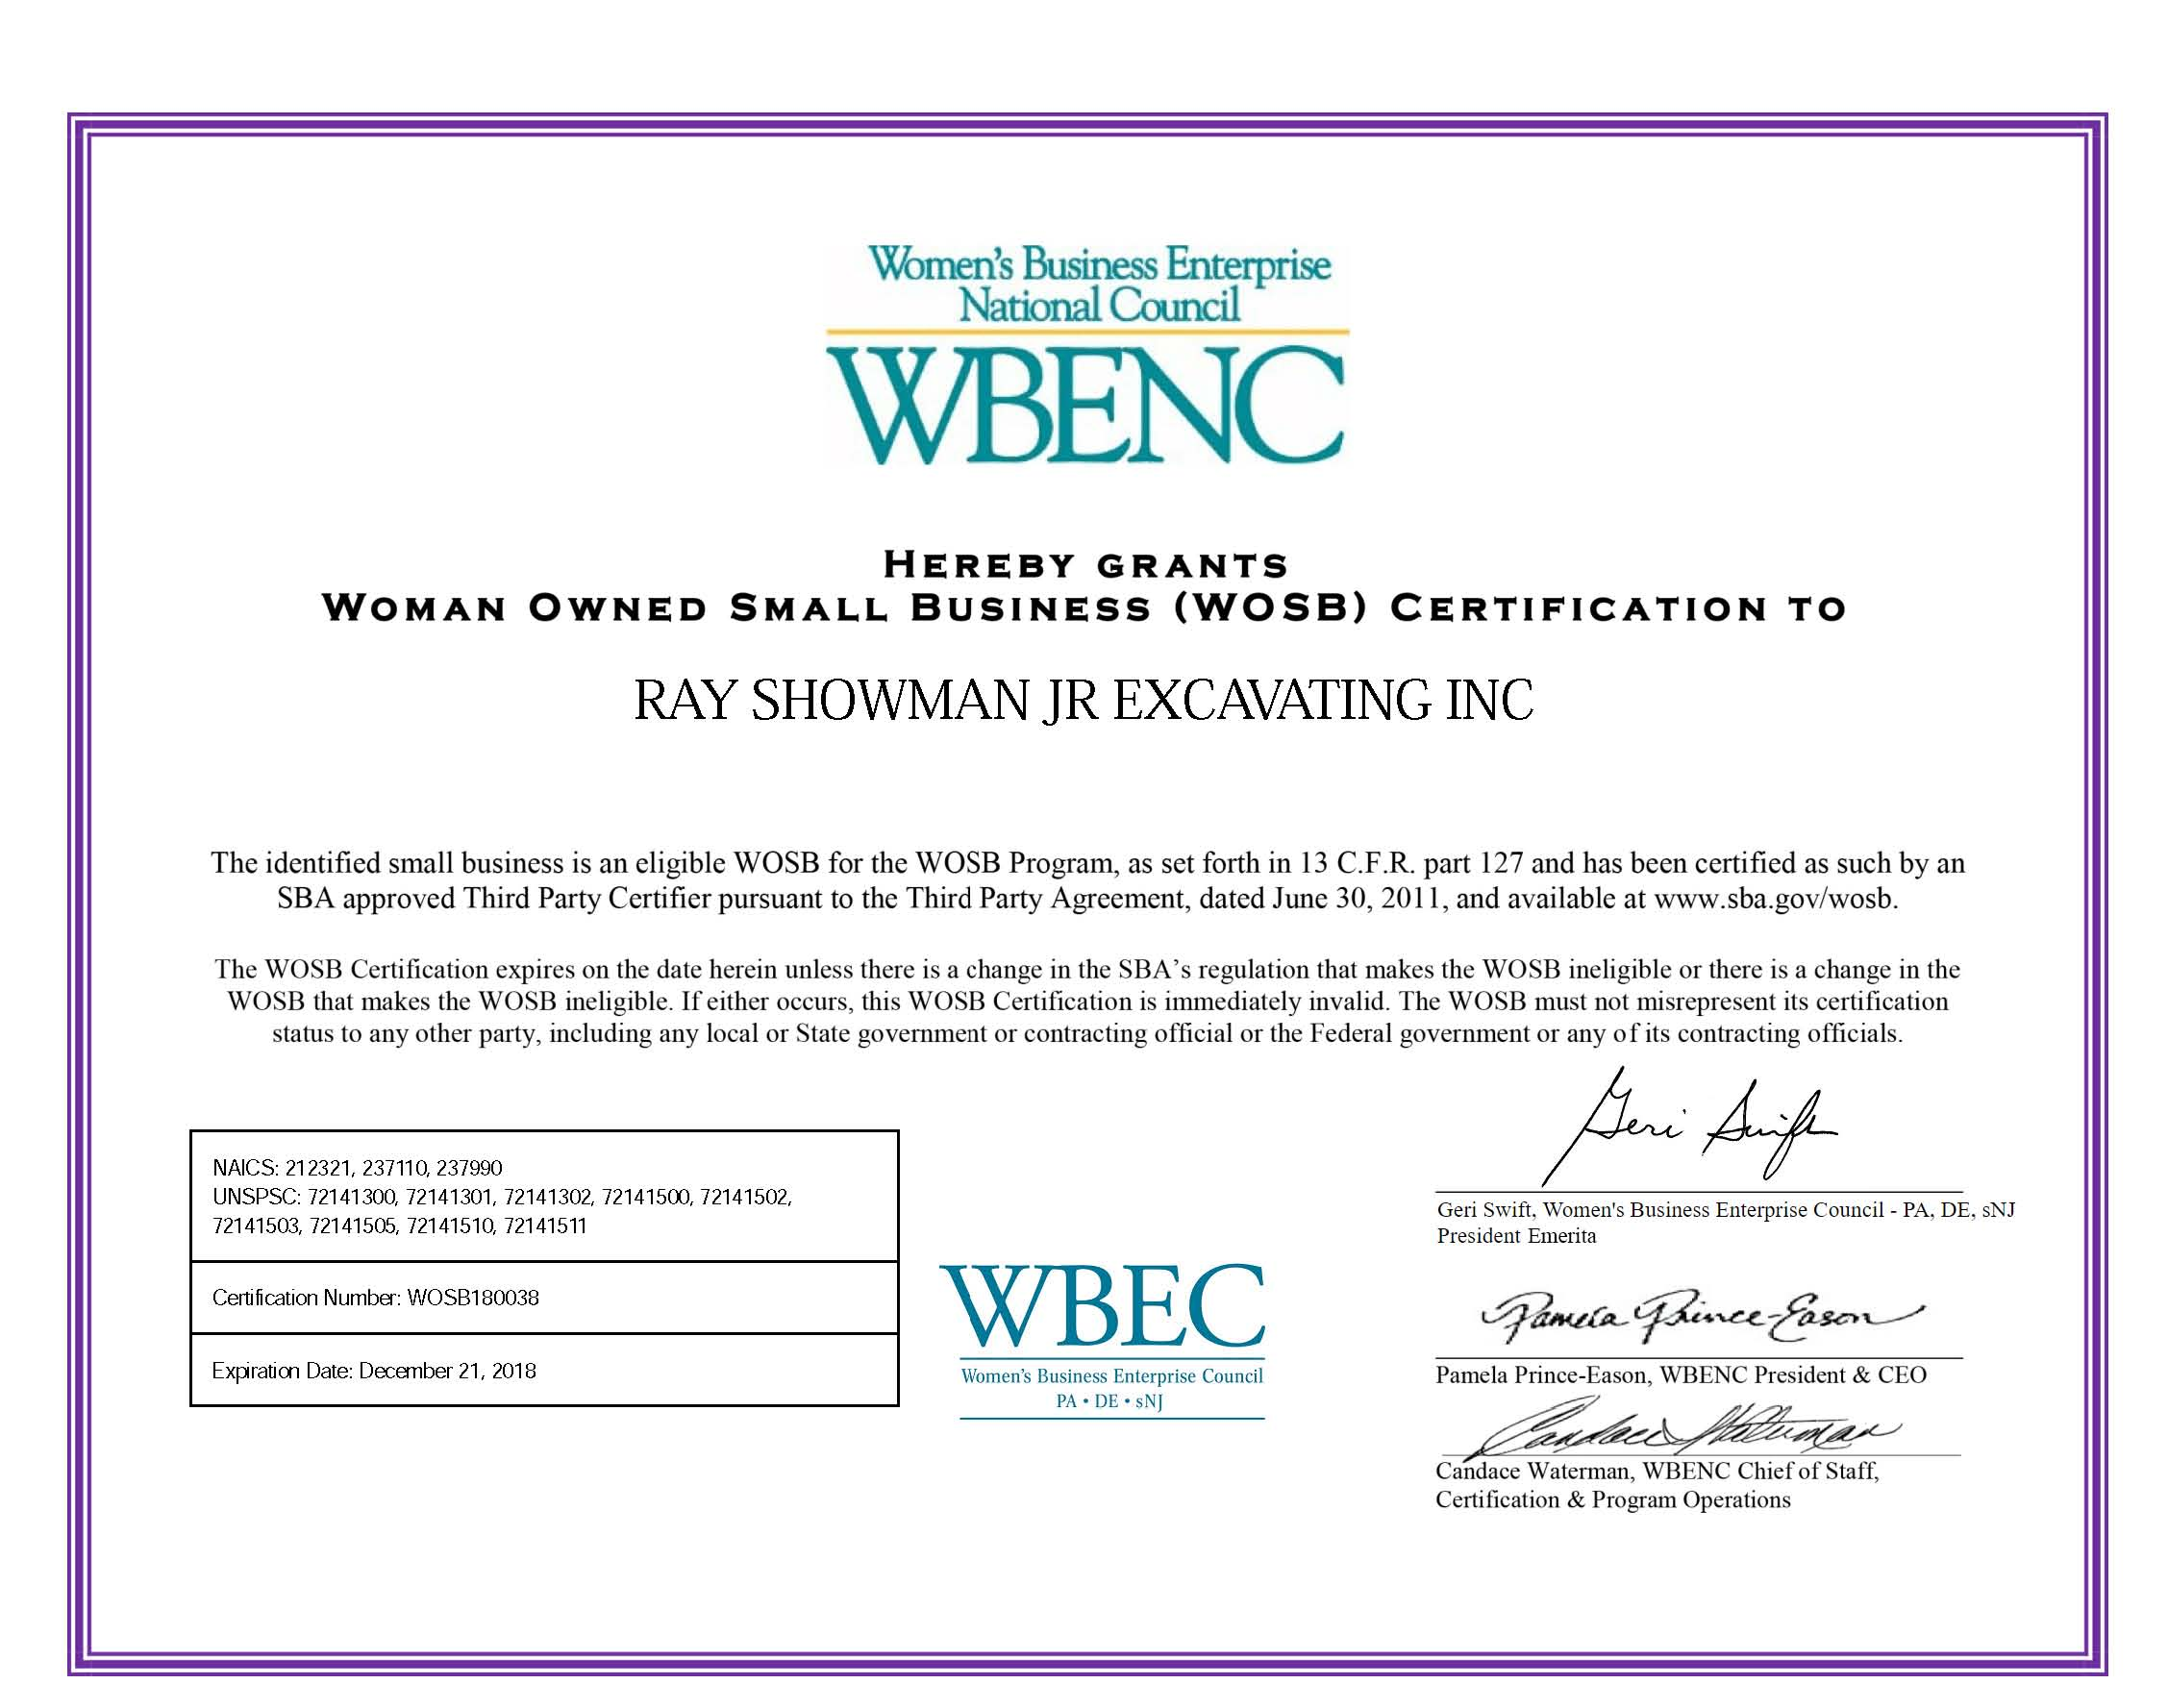 WBENC - Women Owned Small Business